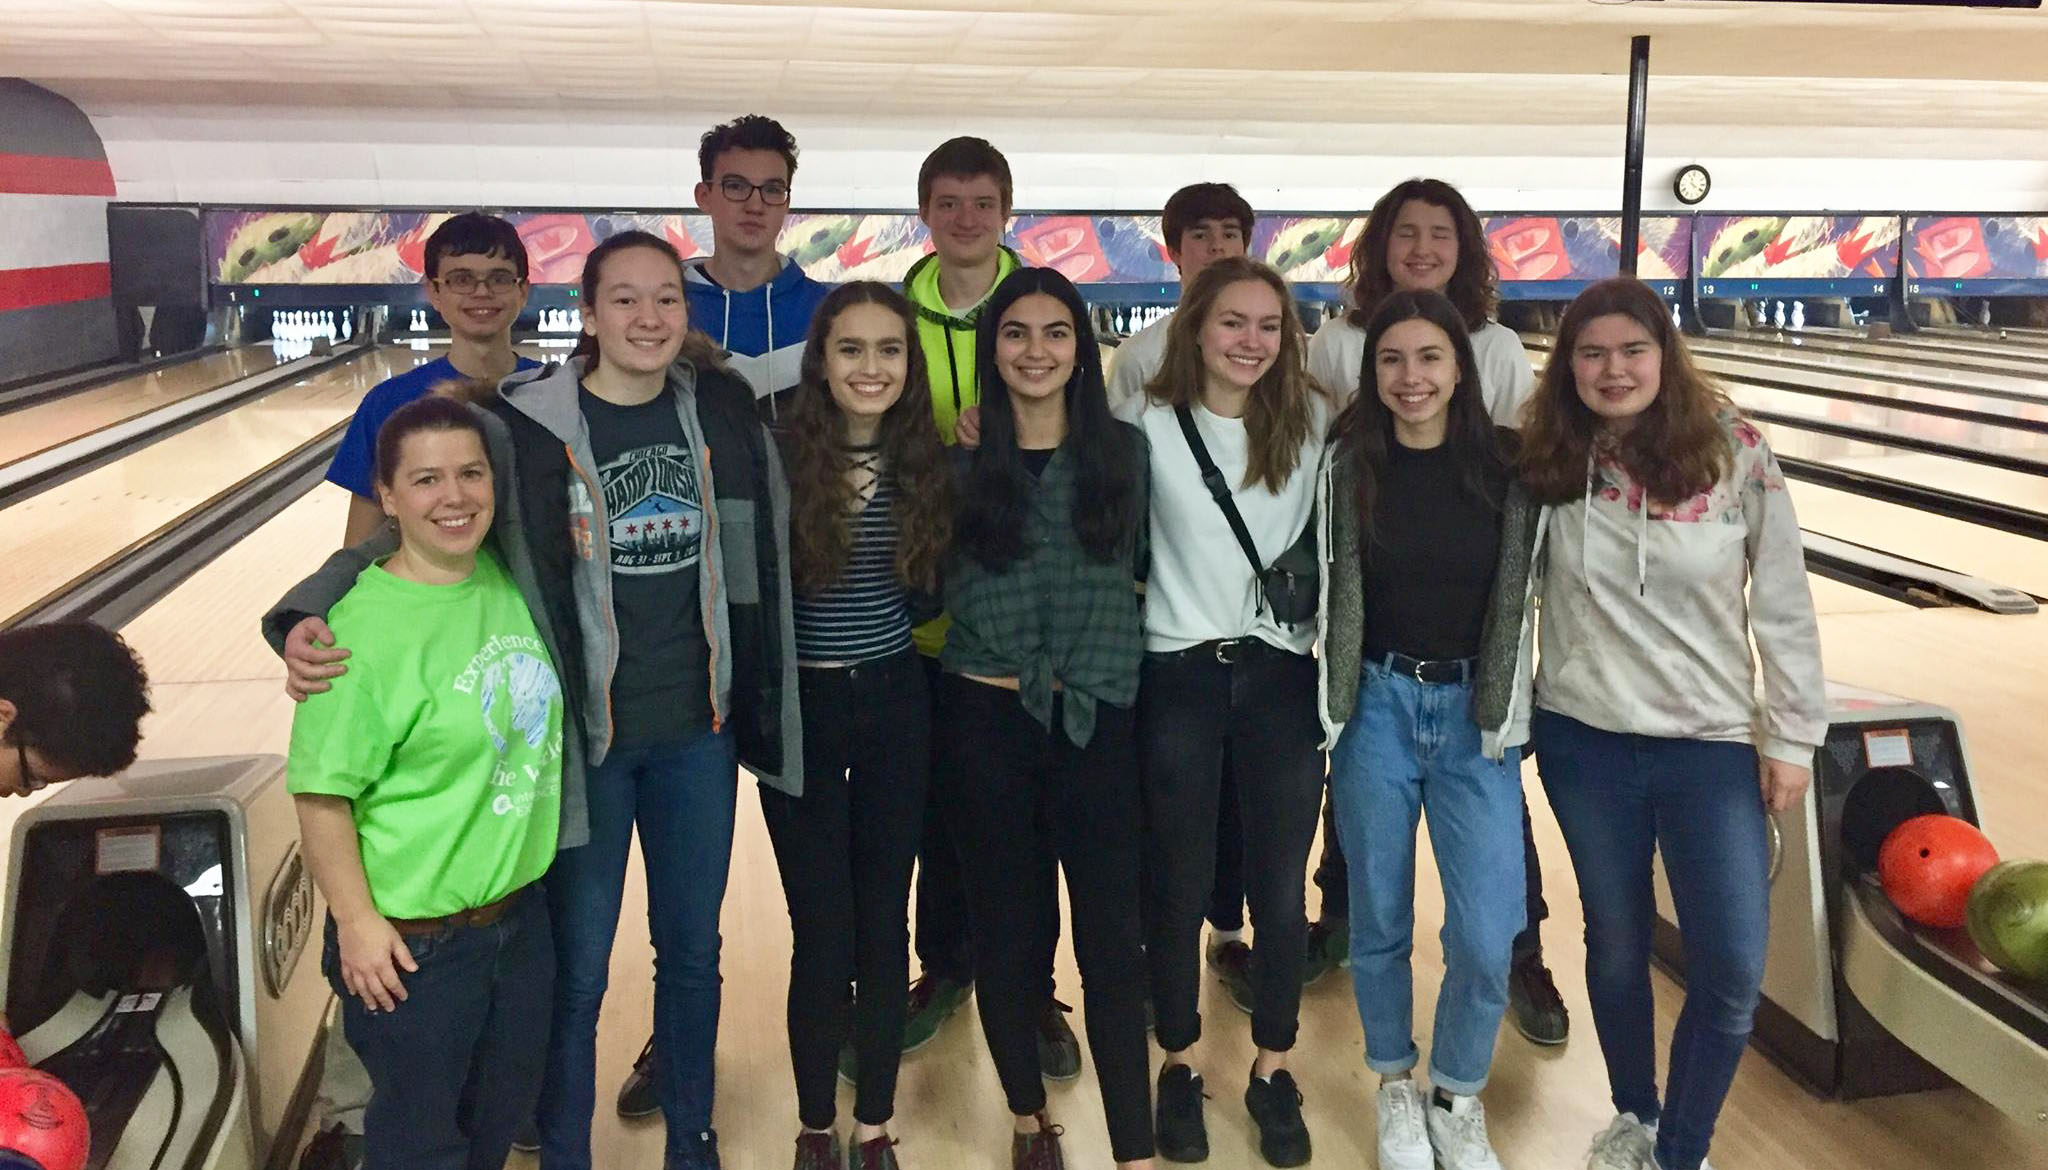 Exchange students and coordinator bowling